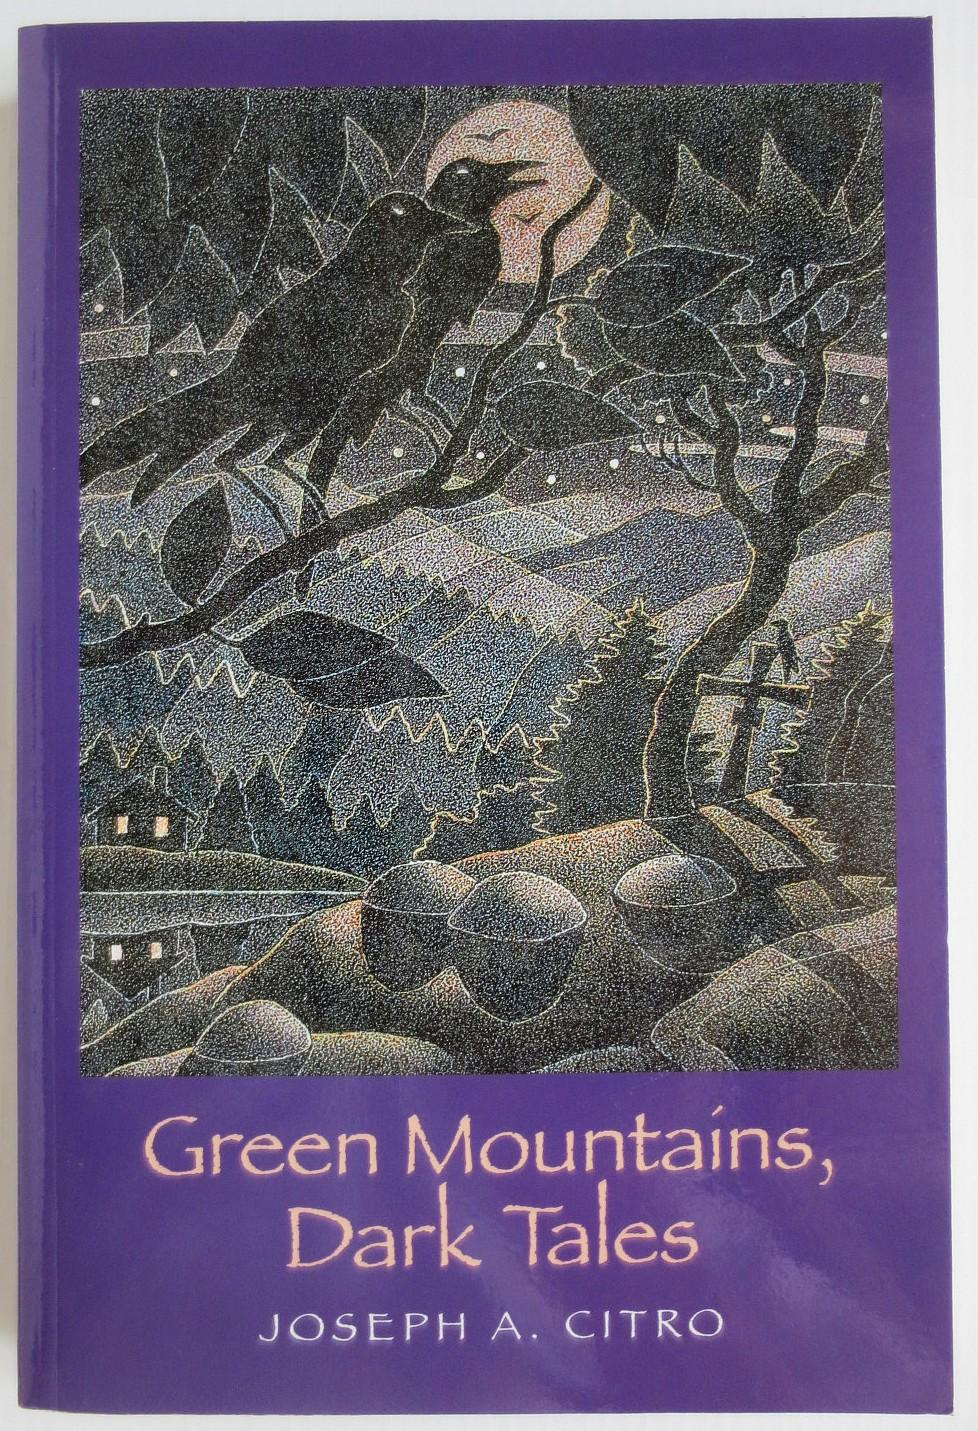 Green Mountains, dark tales - Citro, Joseph A.